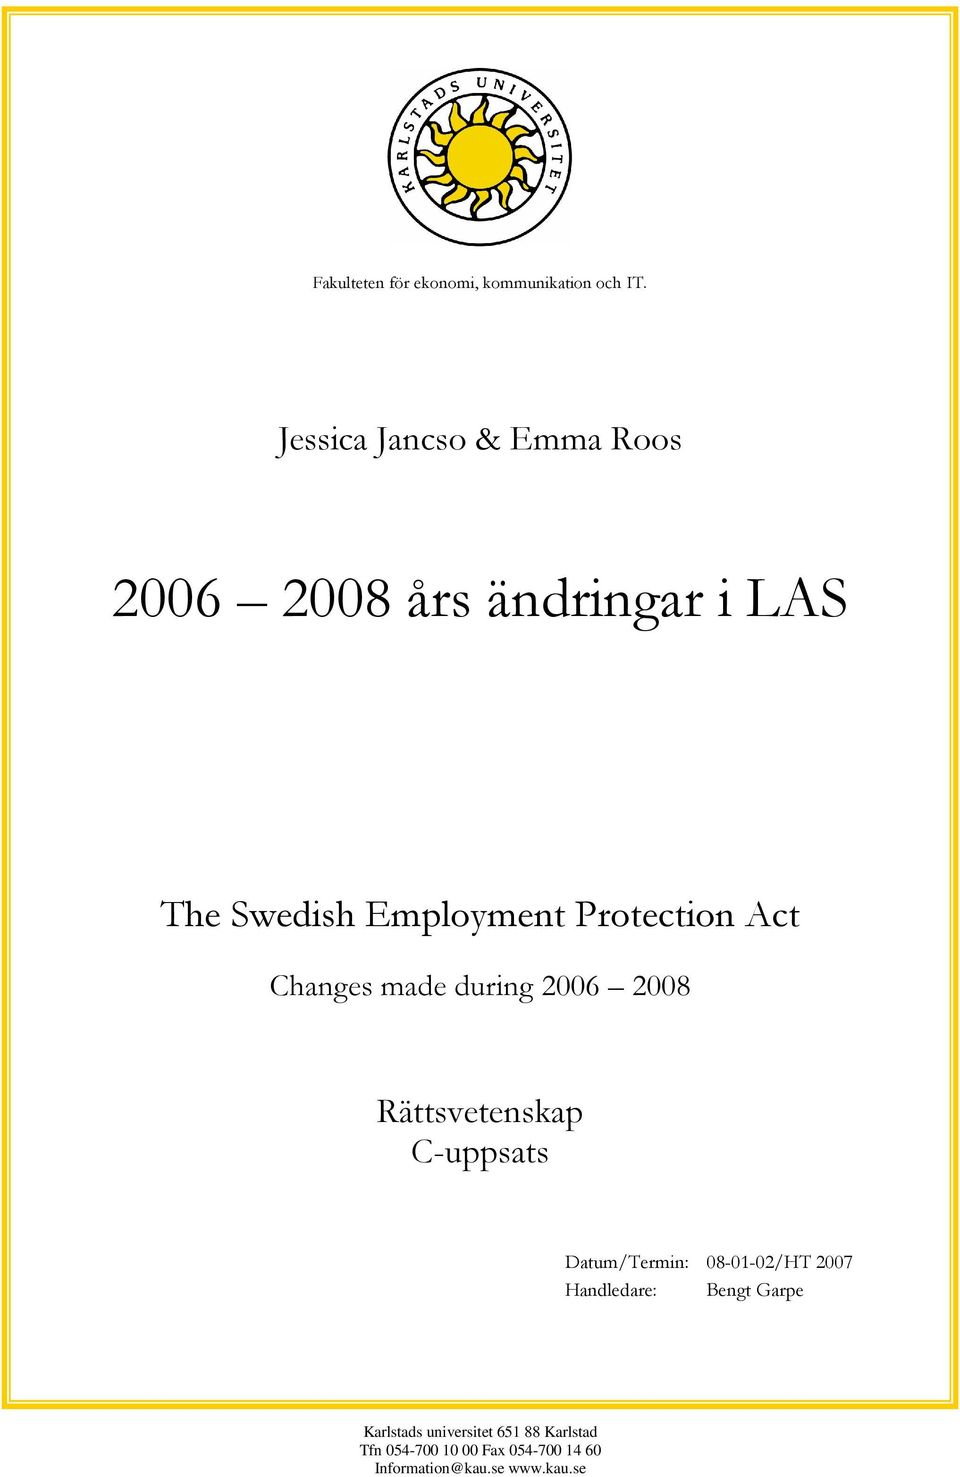 Protection Act Changes made during 2006 2008 Rättsvetenskap C-uppsats Datum/Termin: